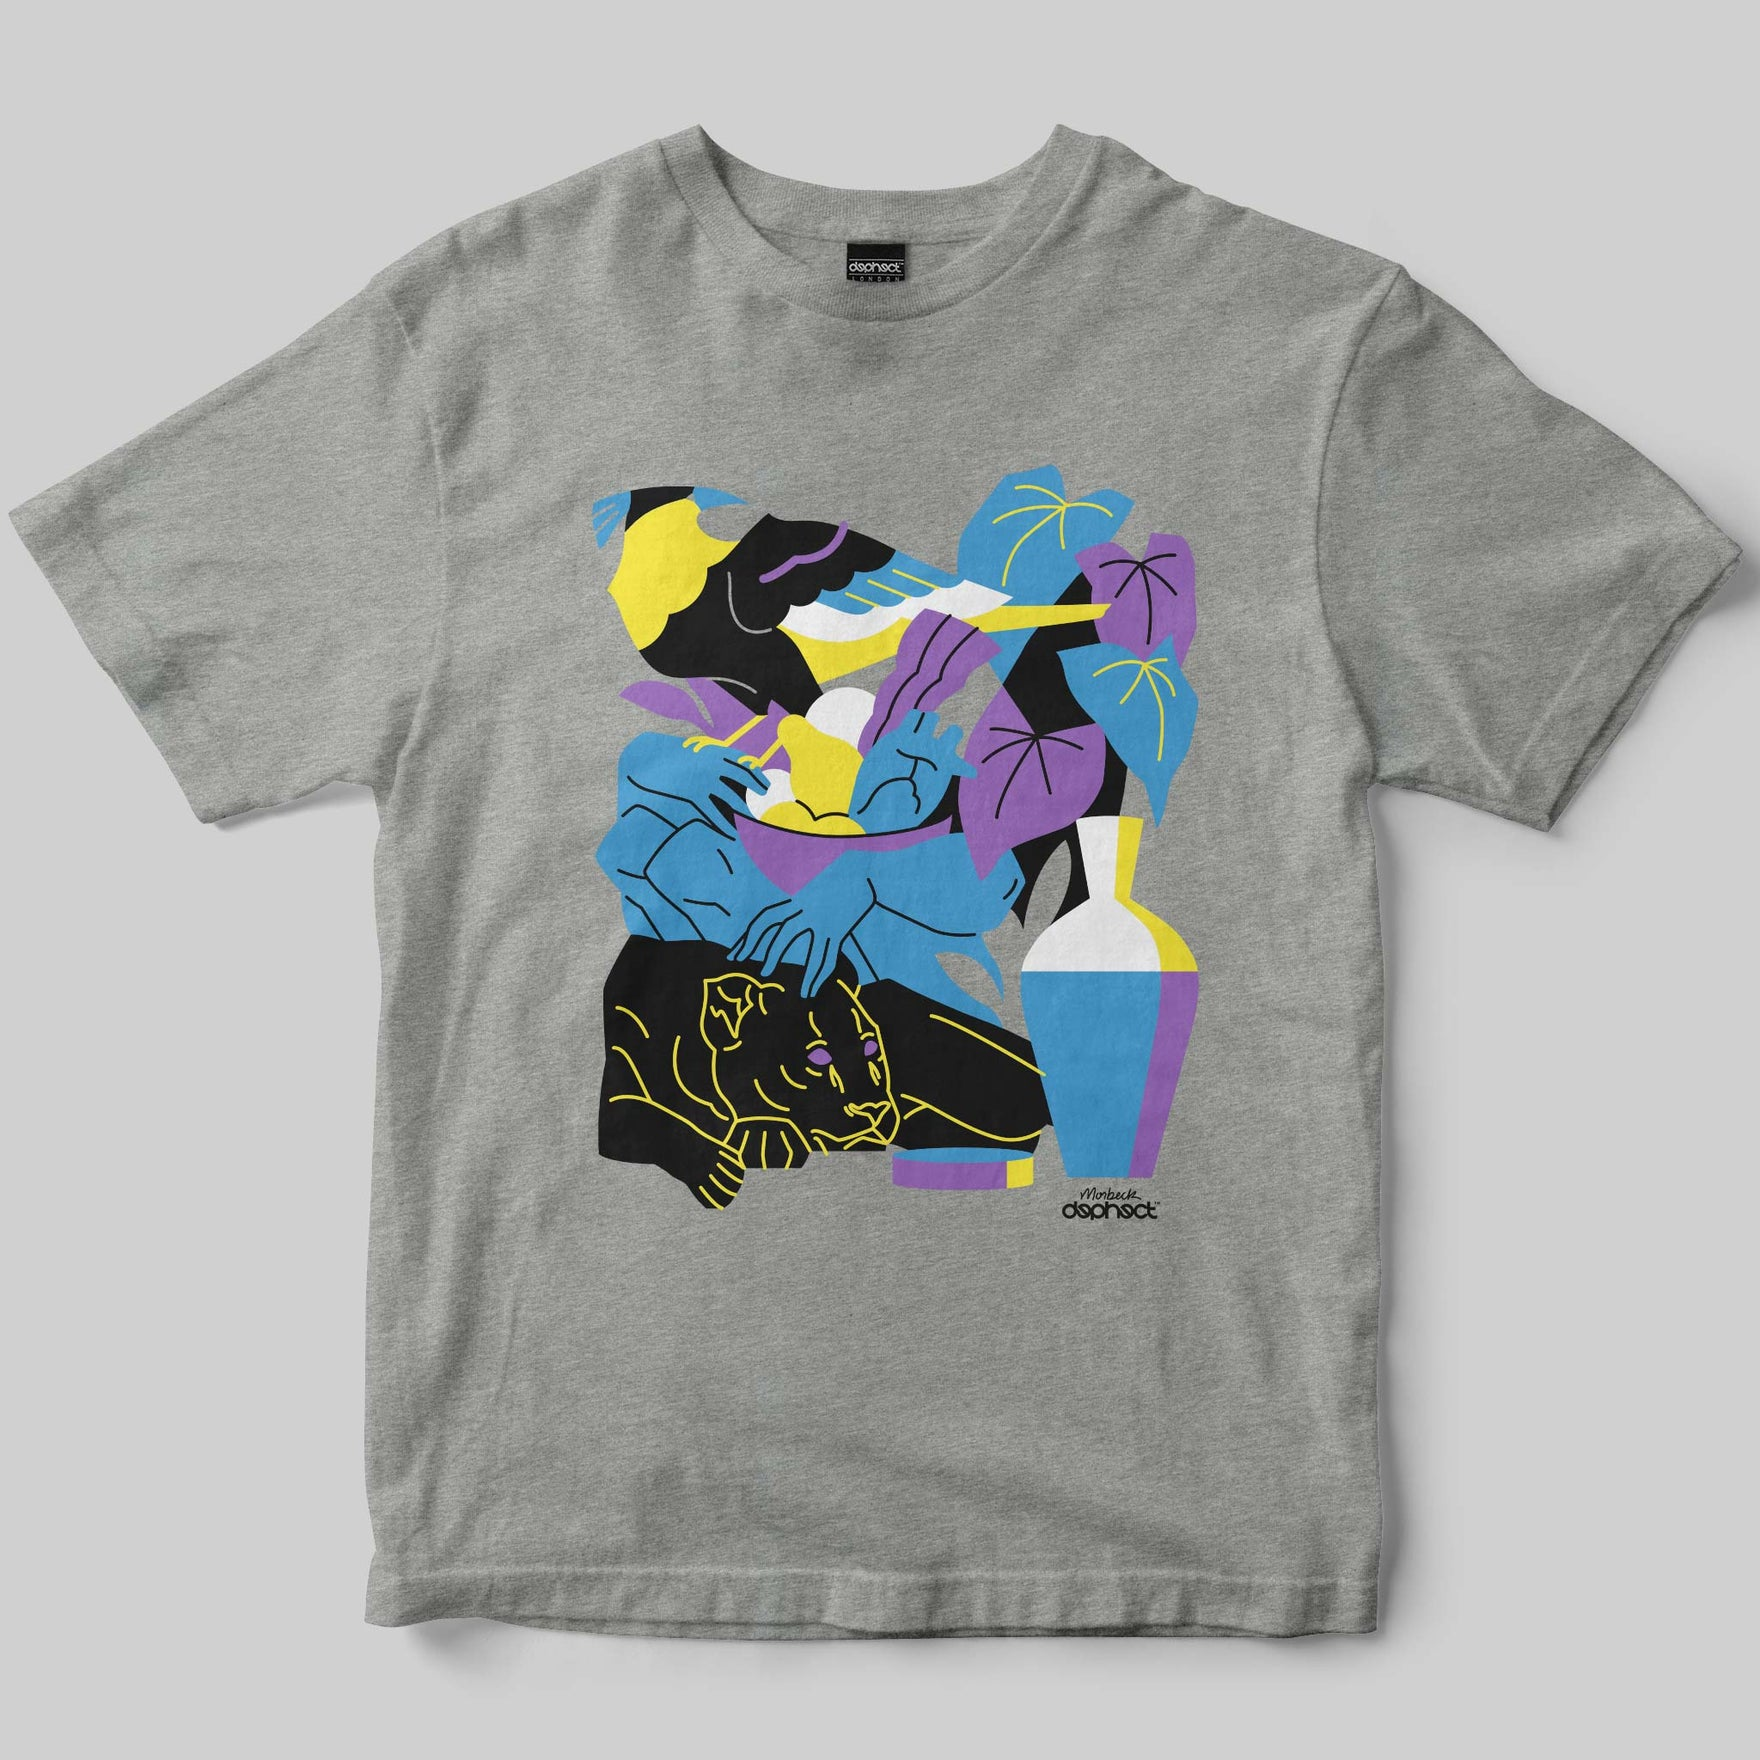 Earthlings T-Shirt / Heather Grey / by André Morbeck